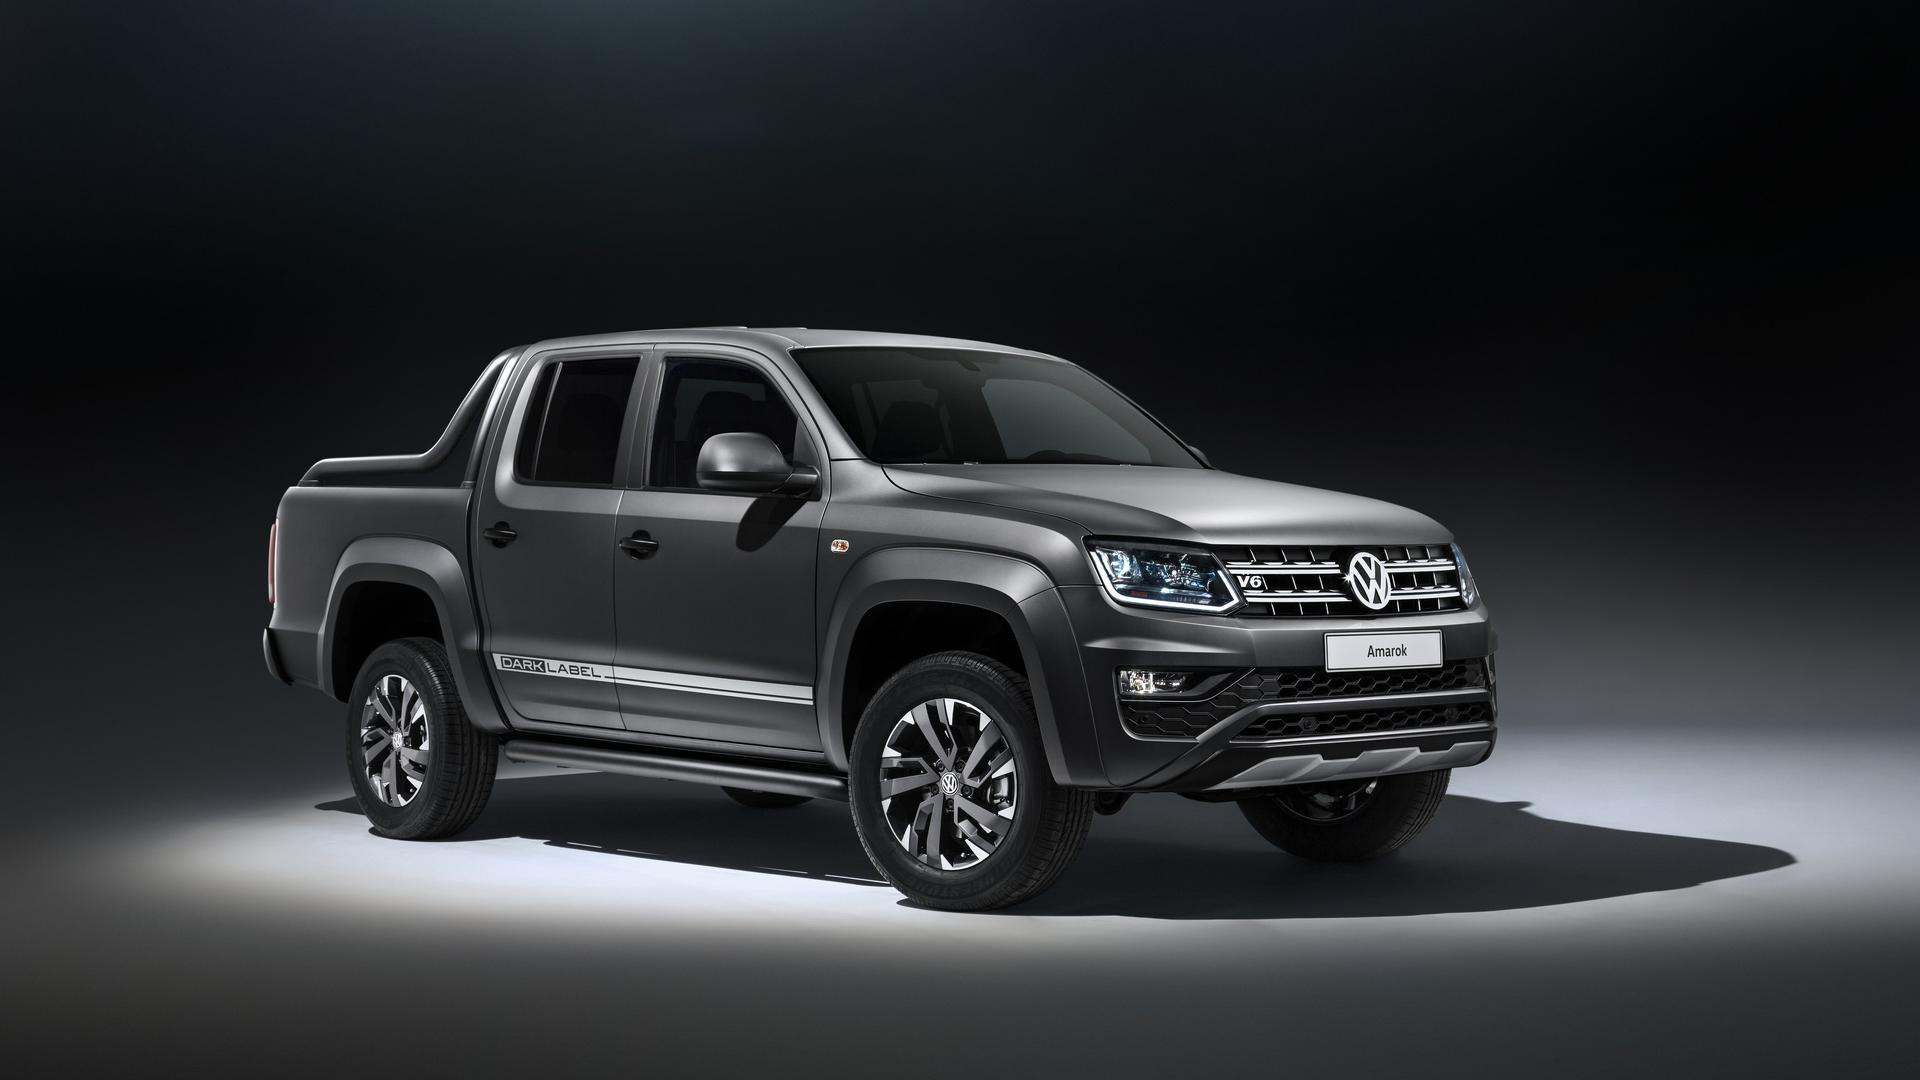 Volkswagen Amarok Aventura Exclusive Concept and Amarok Dark Label Special Edition (5)